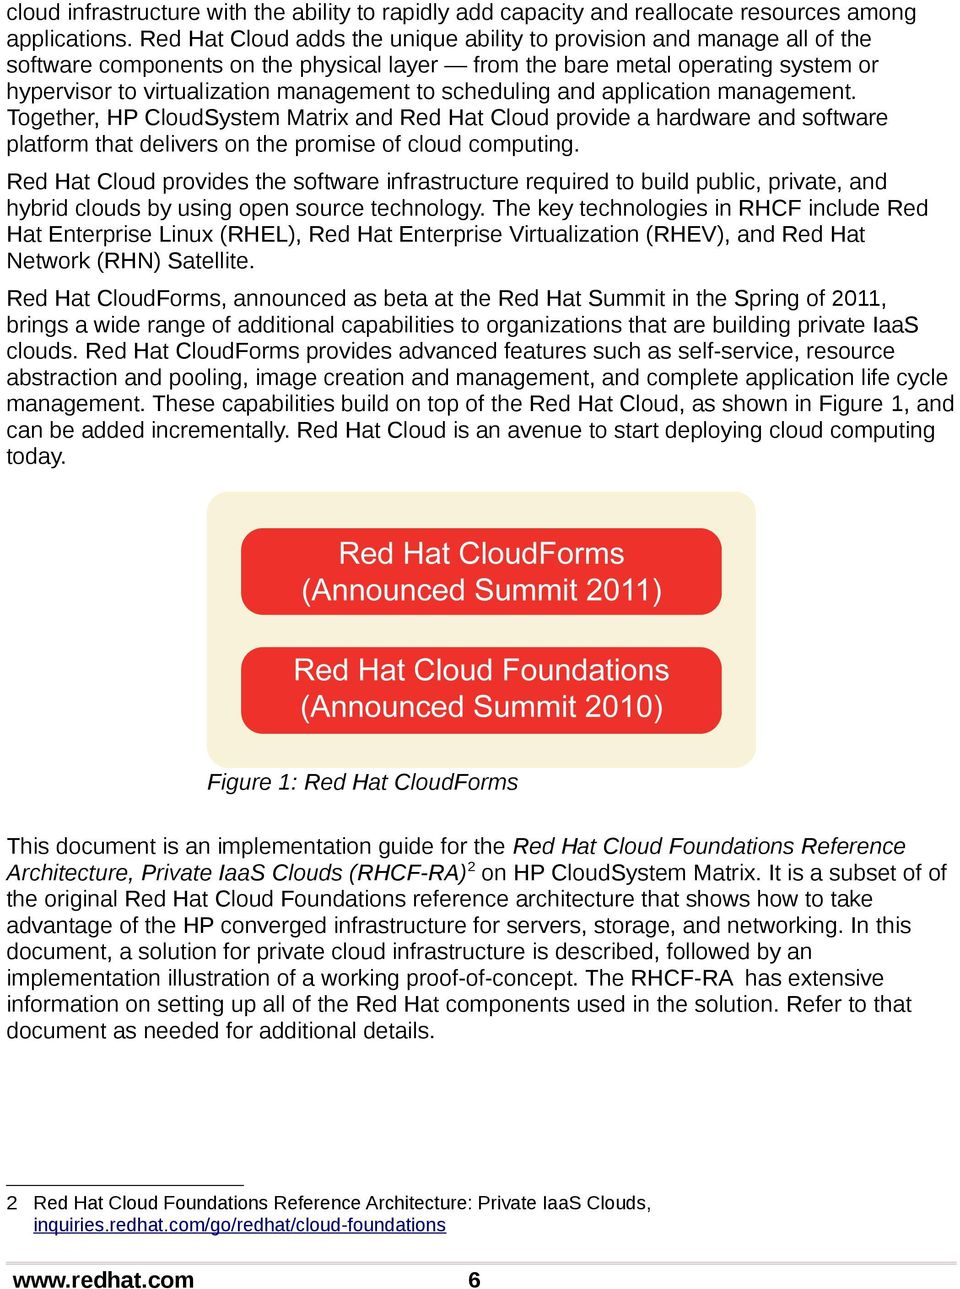 scheduling and application management. Together, HP CloudSystem Matrix and Red Hat Cloud provide a hardware and software platform that delivers on the promise of cloud computing.